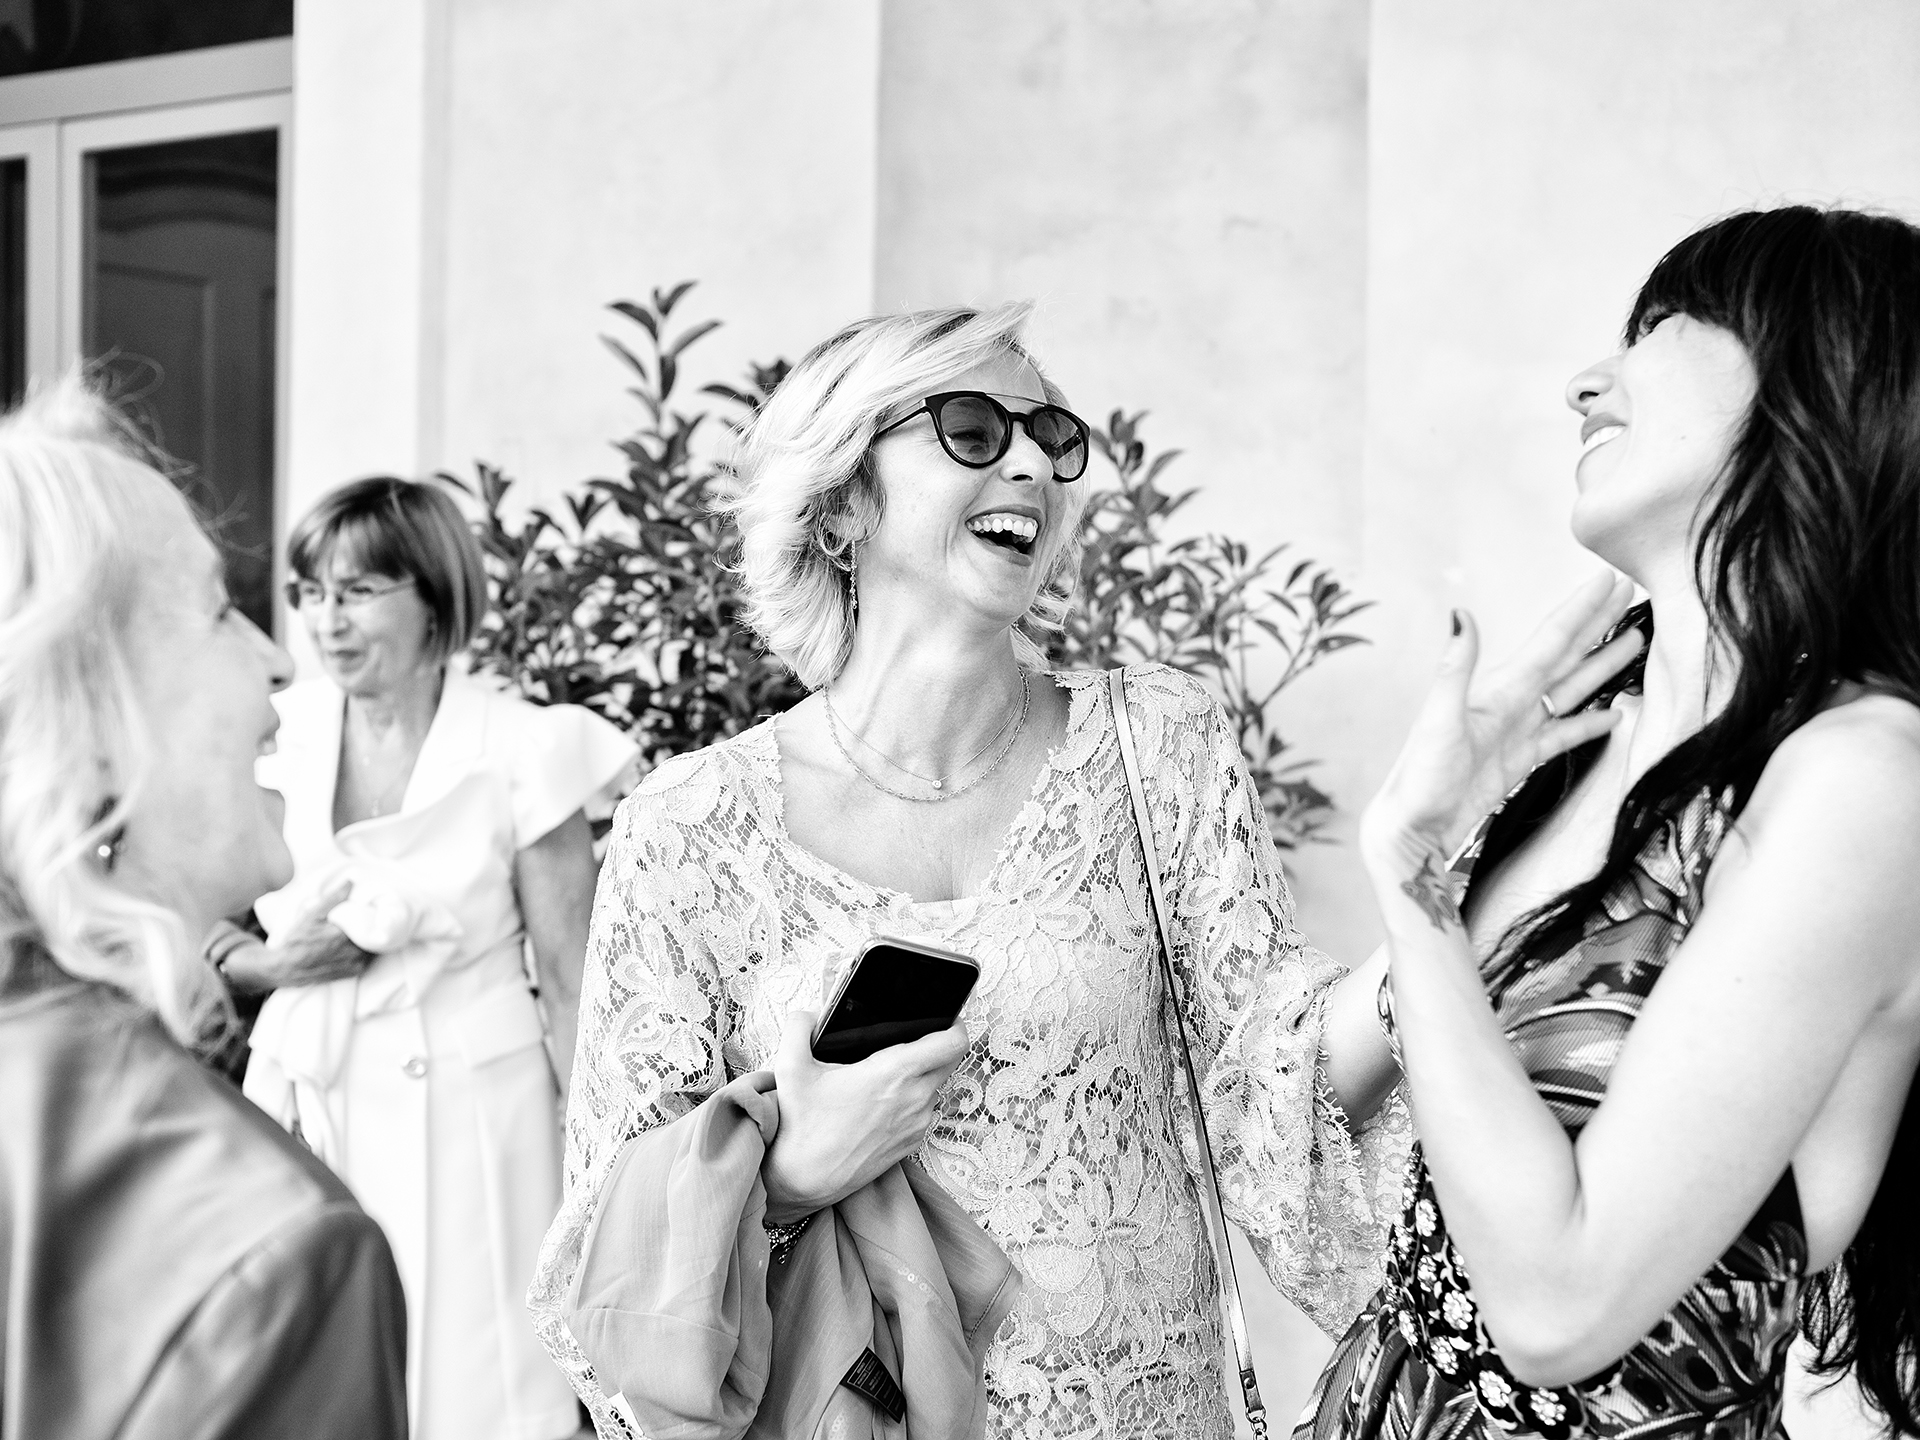 IT villa outdoor garden elopement photos | The bride smiles and laughs with her friends